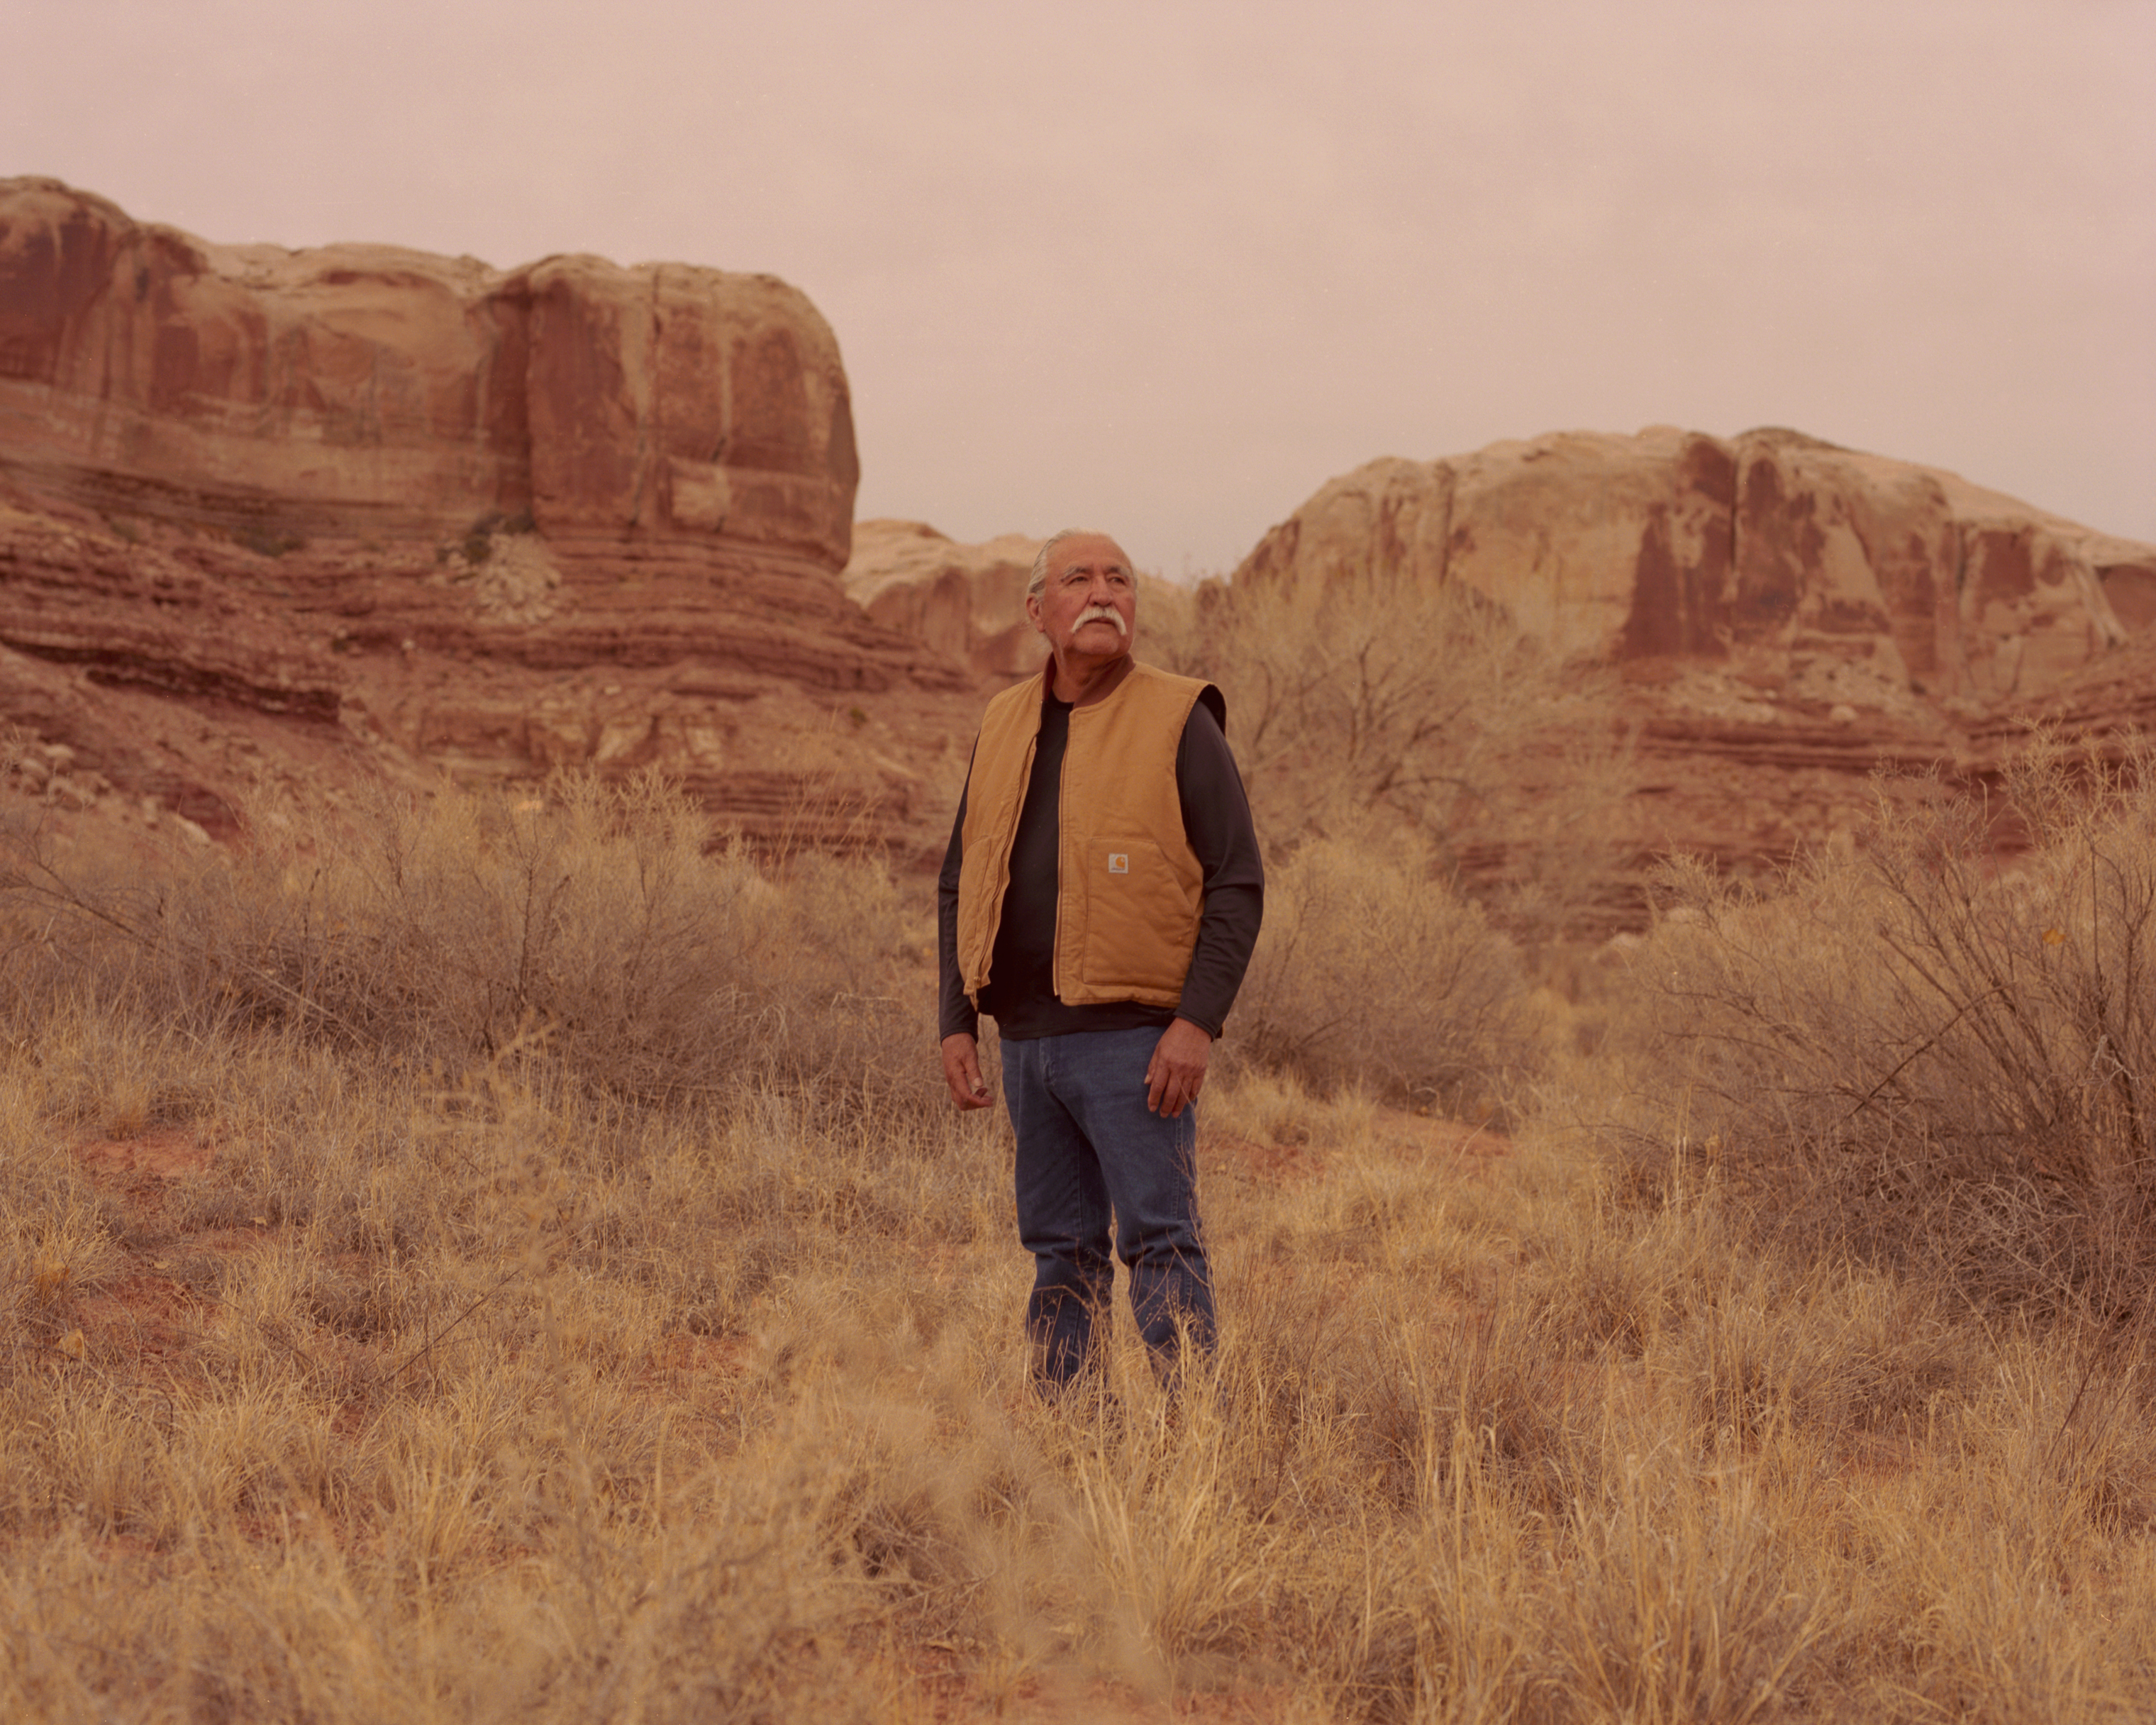 Willie Grayeyes is pictured in Bluff, Utah, one of the towns in Southeastern Utah where residents have been divided in their support of the monument. Grayeyes works with the Bears Ears Commission, a coalition of five tribes that was formed to help direct how the land in the national monument would be managed, according to plans laid out in the Obama proclamation. He has also been attempting to run for local office as a Democrat in San Juan County, where Bears Ears is located. The Republican-controlled commission has opposed the monument and officials have been seeking to prove that Grayeyes is not eligible to run. A new set of commissioners more sympathetic to tribes could work to support the monument. As it stands, the county has requested to join the Bears Ears lawsuit as a defendant, alongside President Trump.